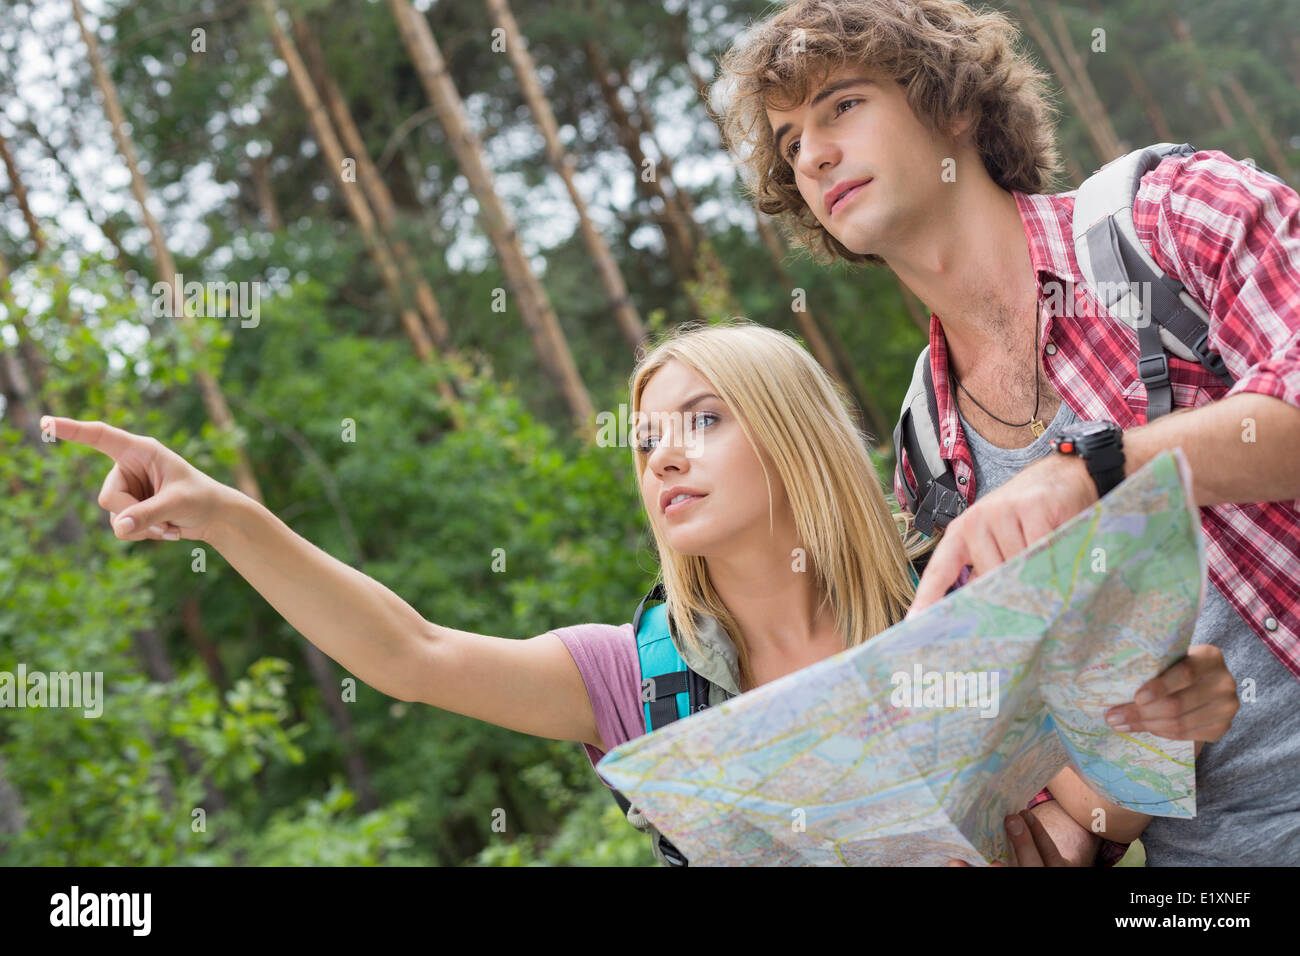 Hiking couple with map discussing over direction in forest - Stock Image